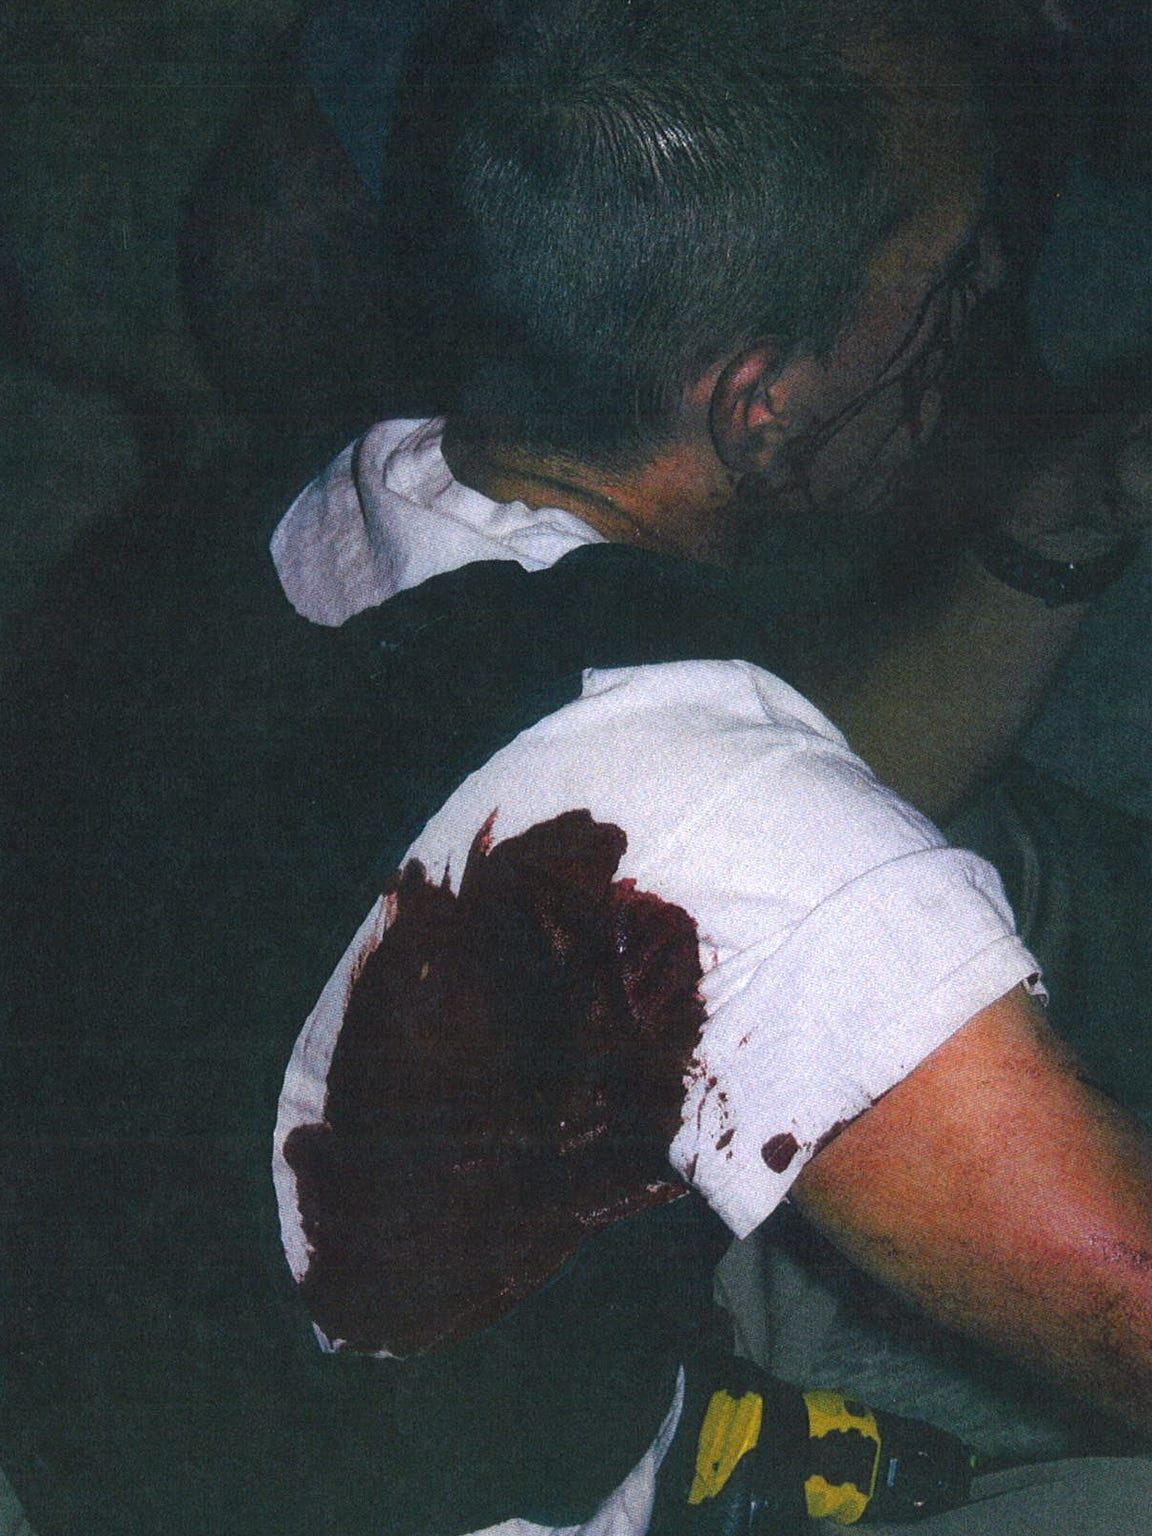 Dane Norem bleeds from a stab wound to his back in a crime scene photo from October 2012.